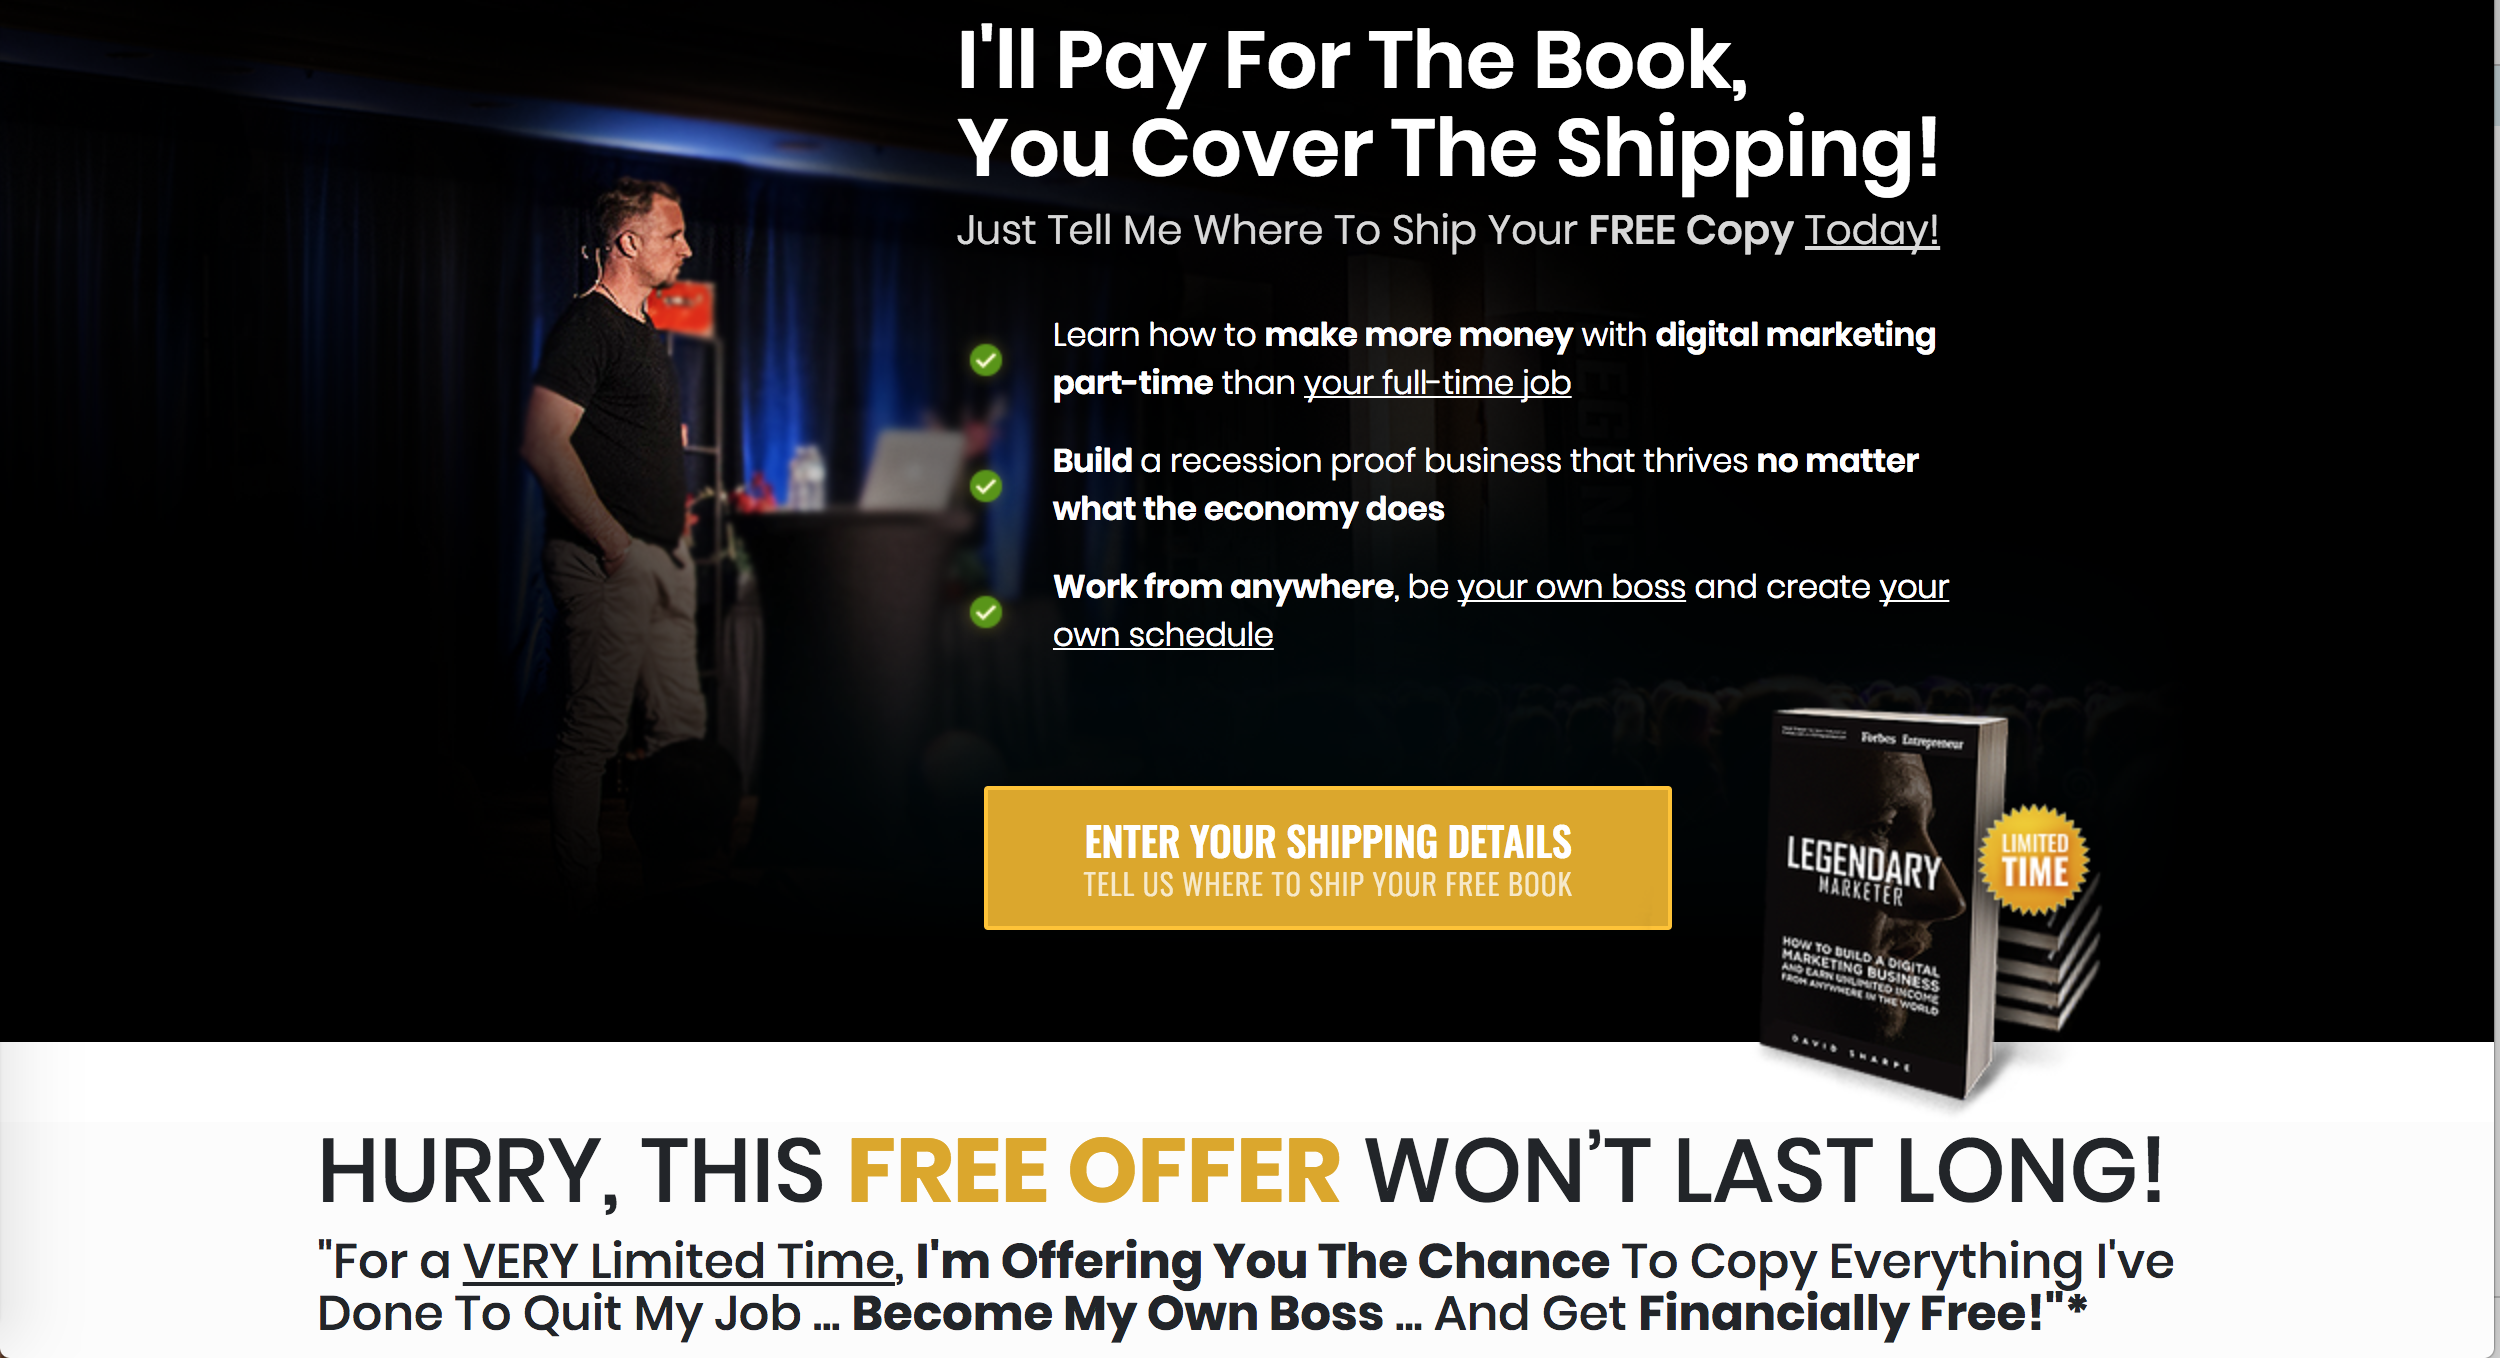 Legendary Marketer Coupon Code Usa